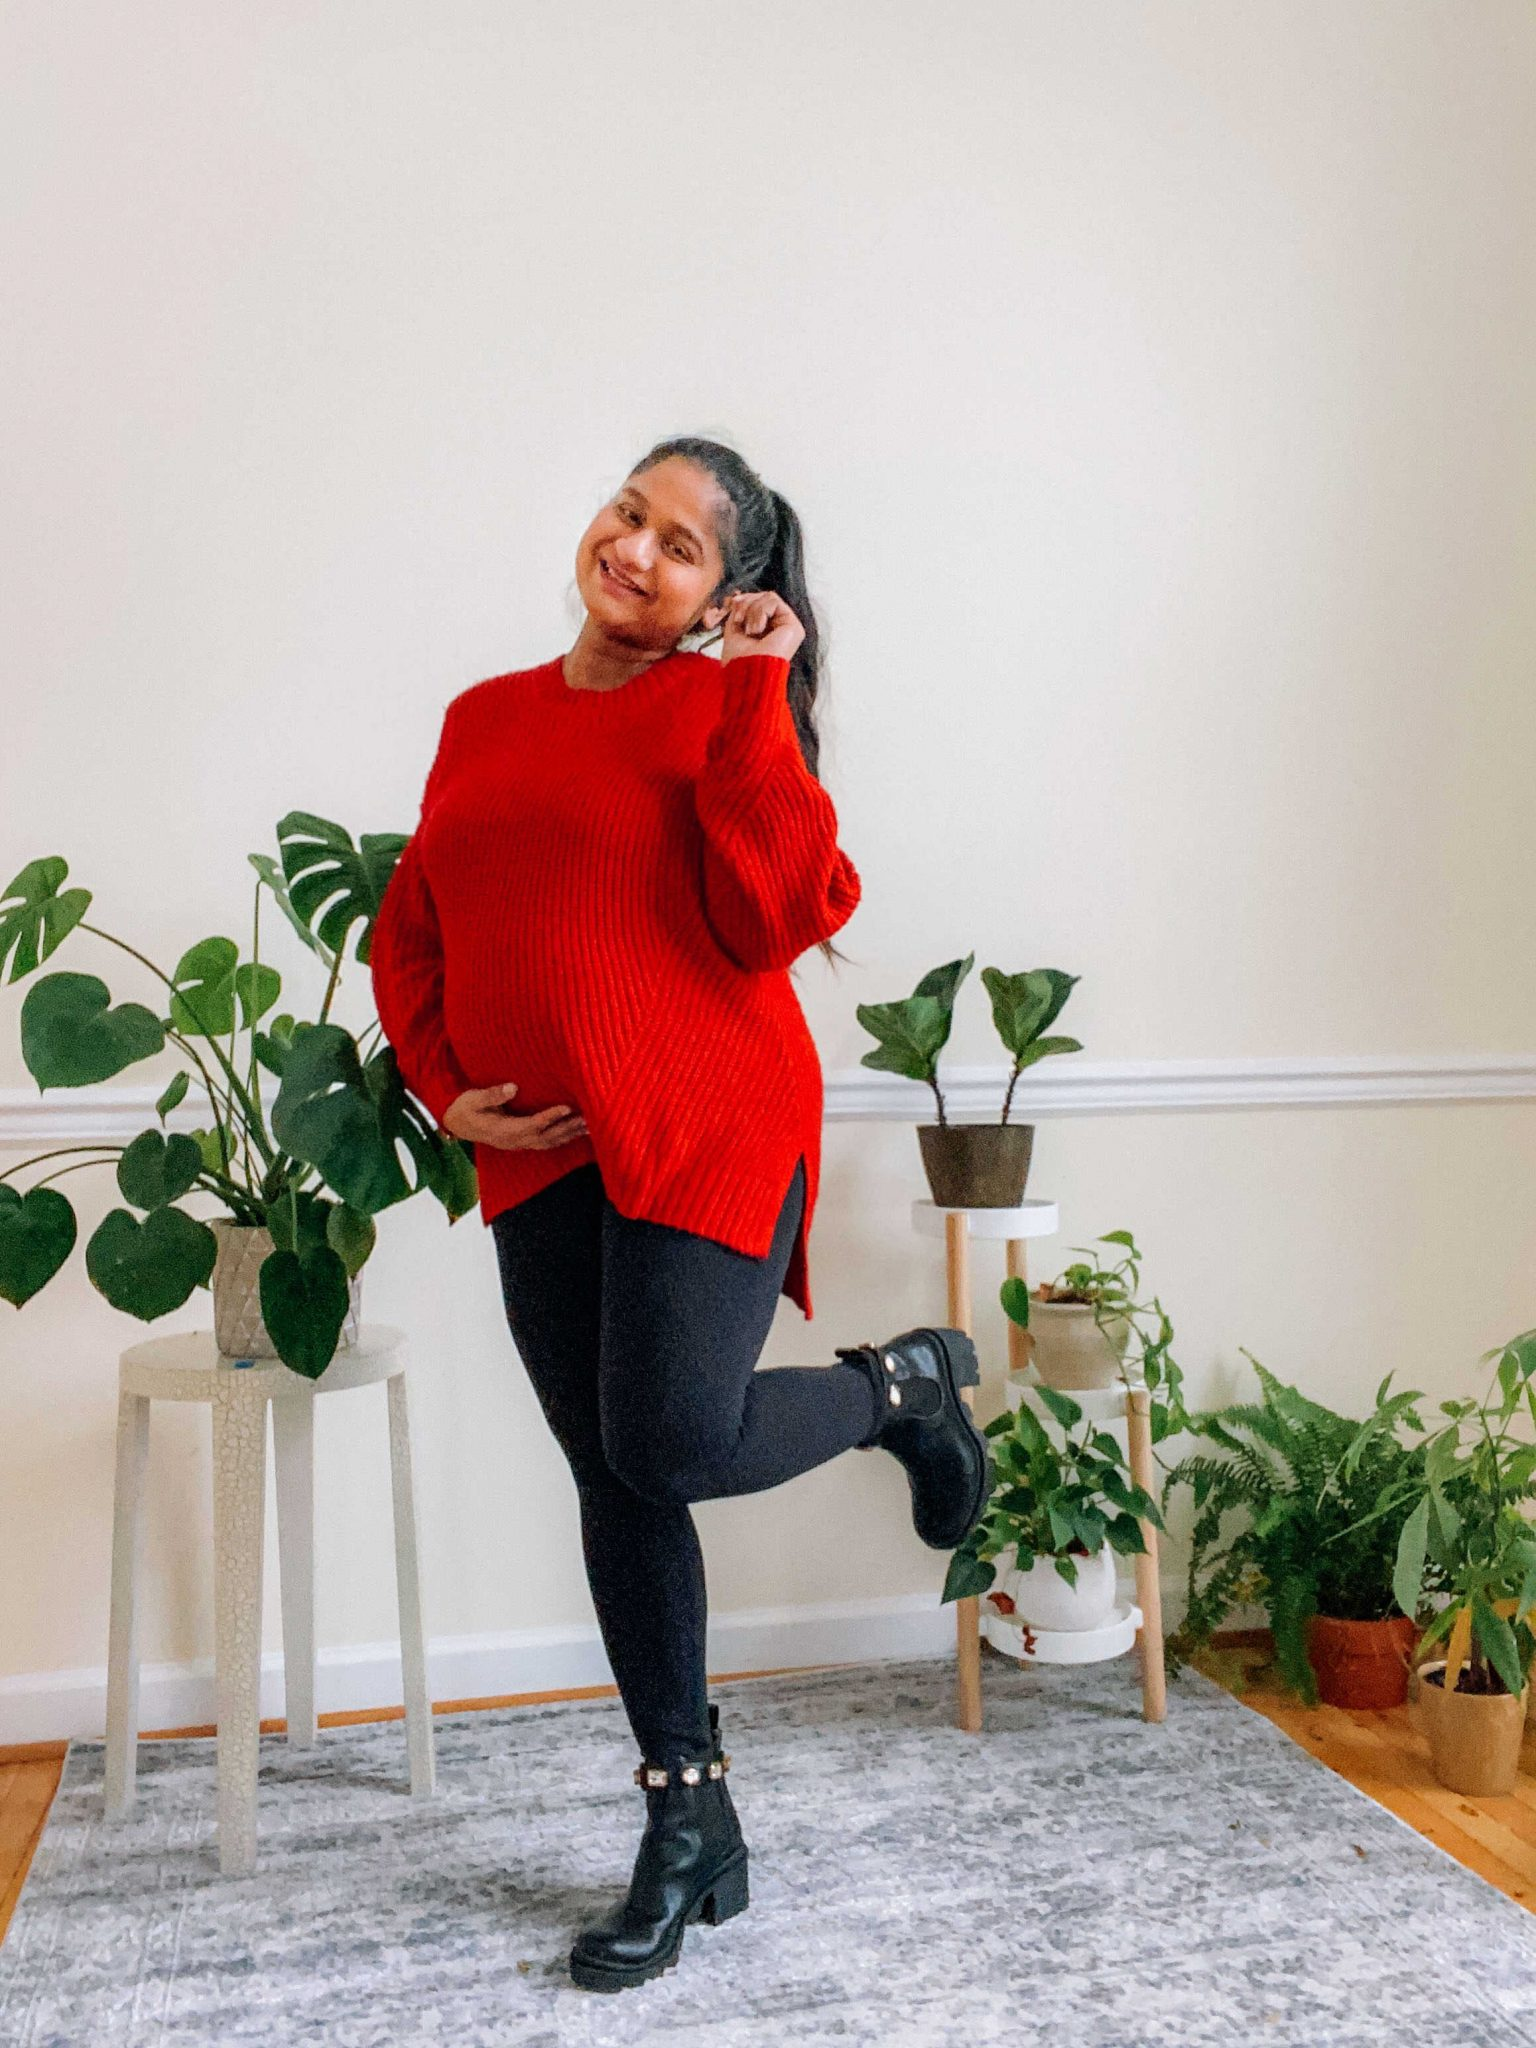 Valentines day maternity style-.wearing AE Oversized Dreamspun Crew Neck Sweater,Target Ingrid and Isabel maternity legging, Steve Madden Amulet Moto Boots |Valentine's Day Maternity Outfit by popular Maryland modest fashion blog, Dreaming Loud: image of a pregnant woman wearing a red turtleneck tunic sweater, black leggings, and black Steve Madden ankle boots.